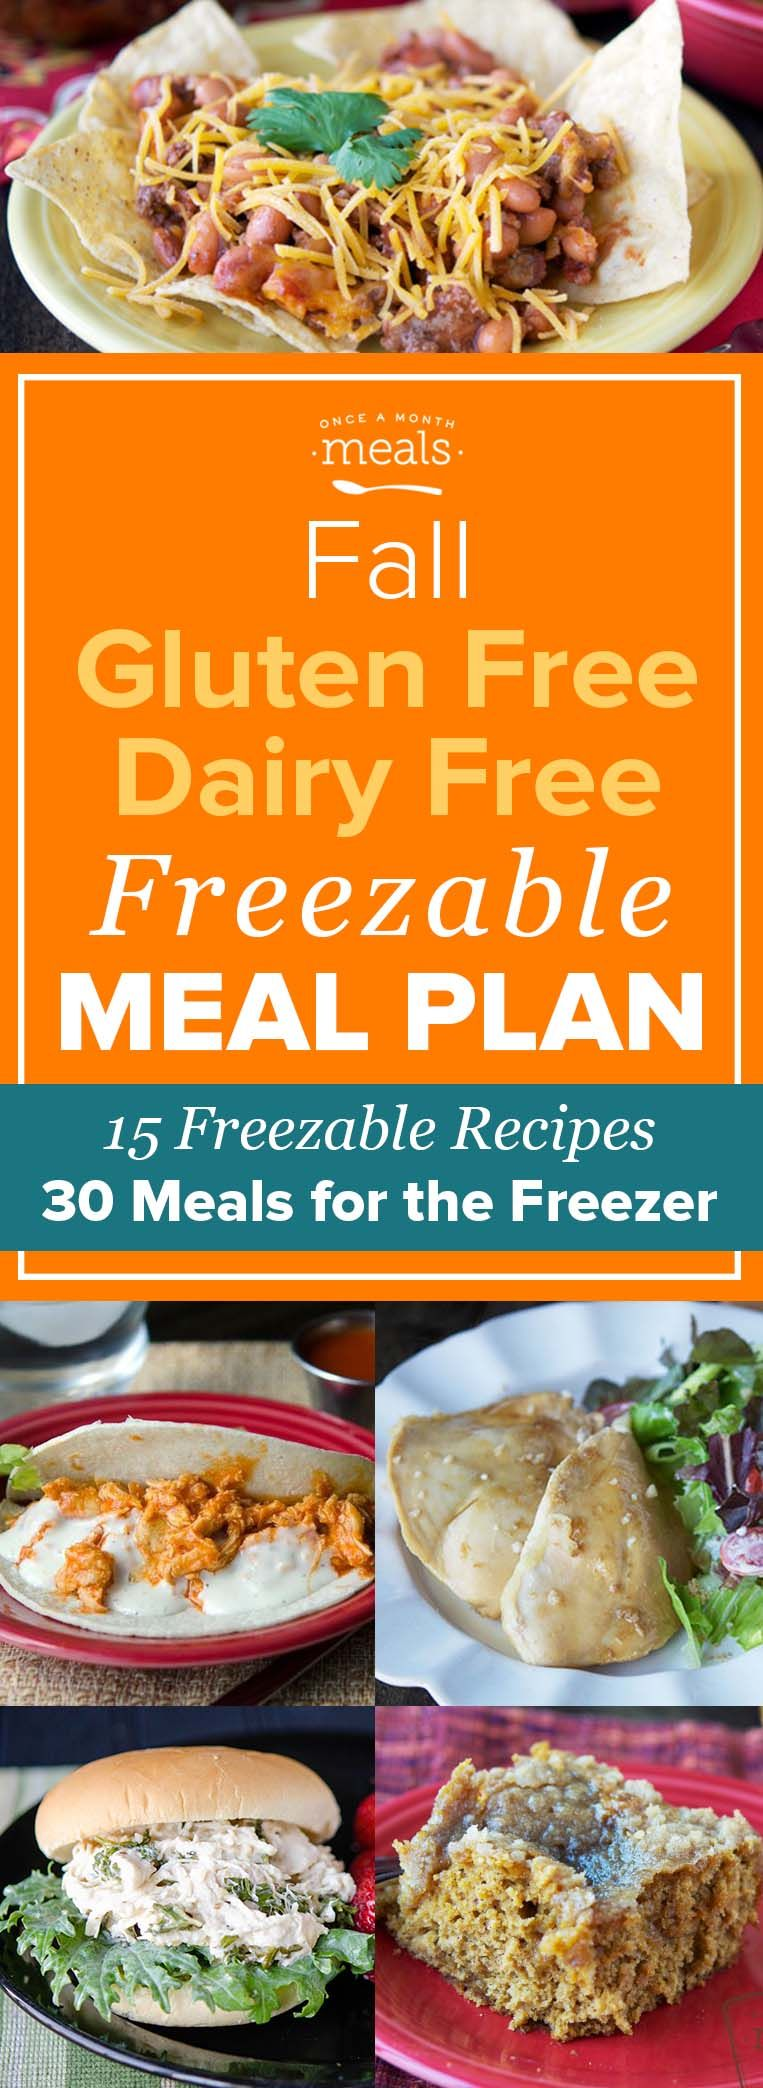 Our Fall Gluten Free Dairy Free Freezer Menu features